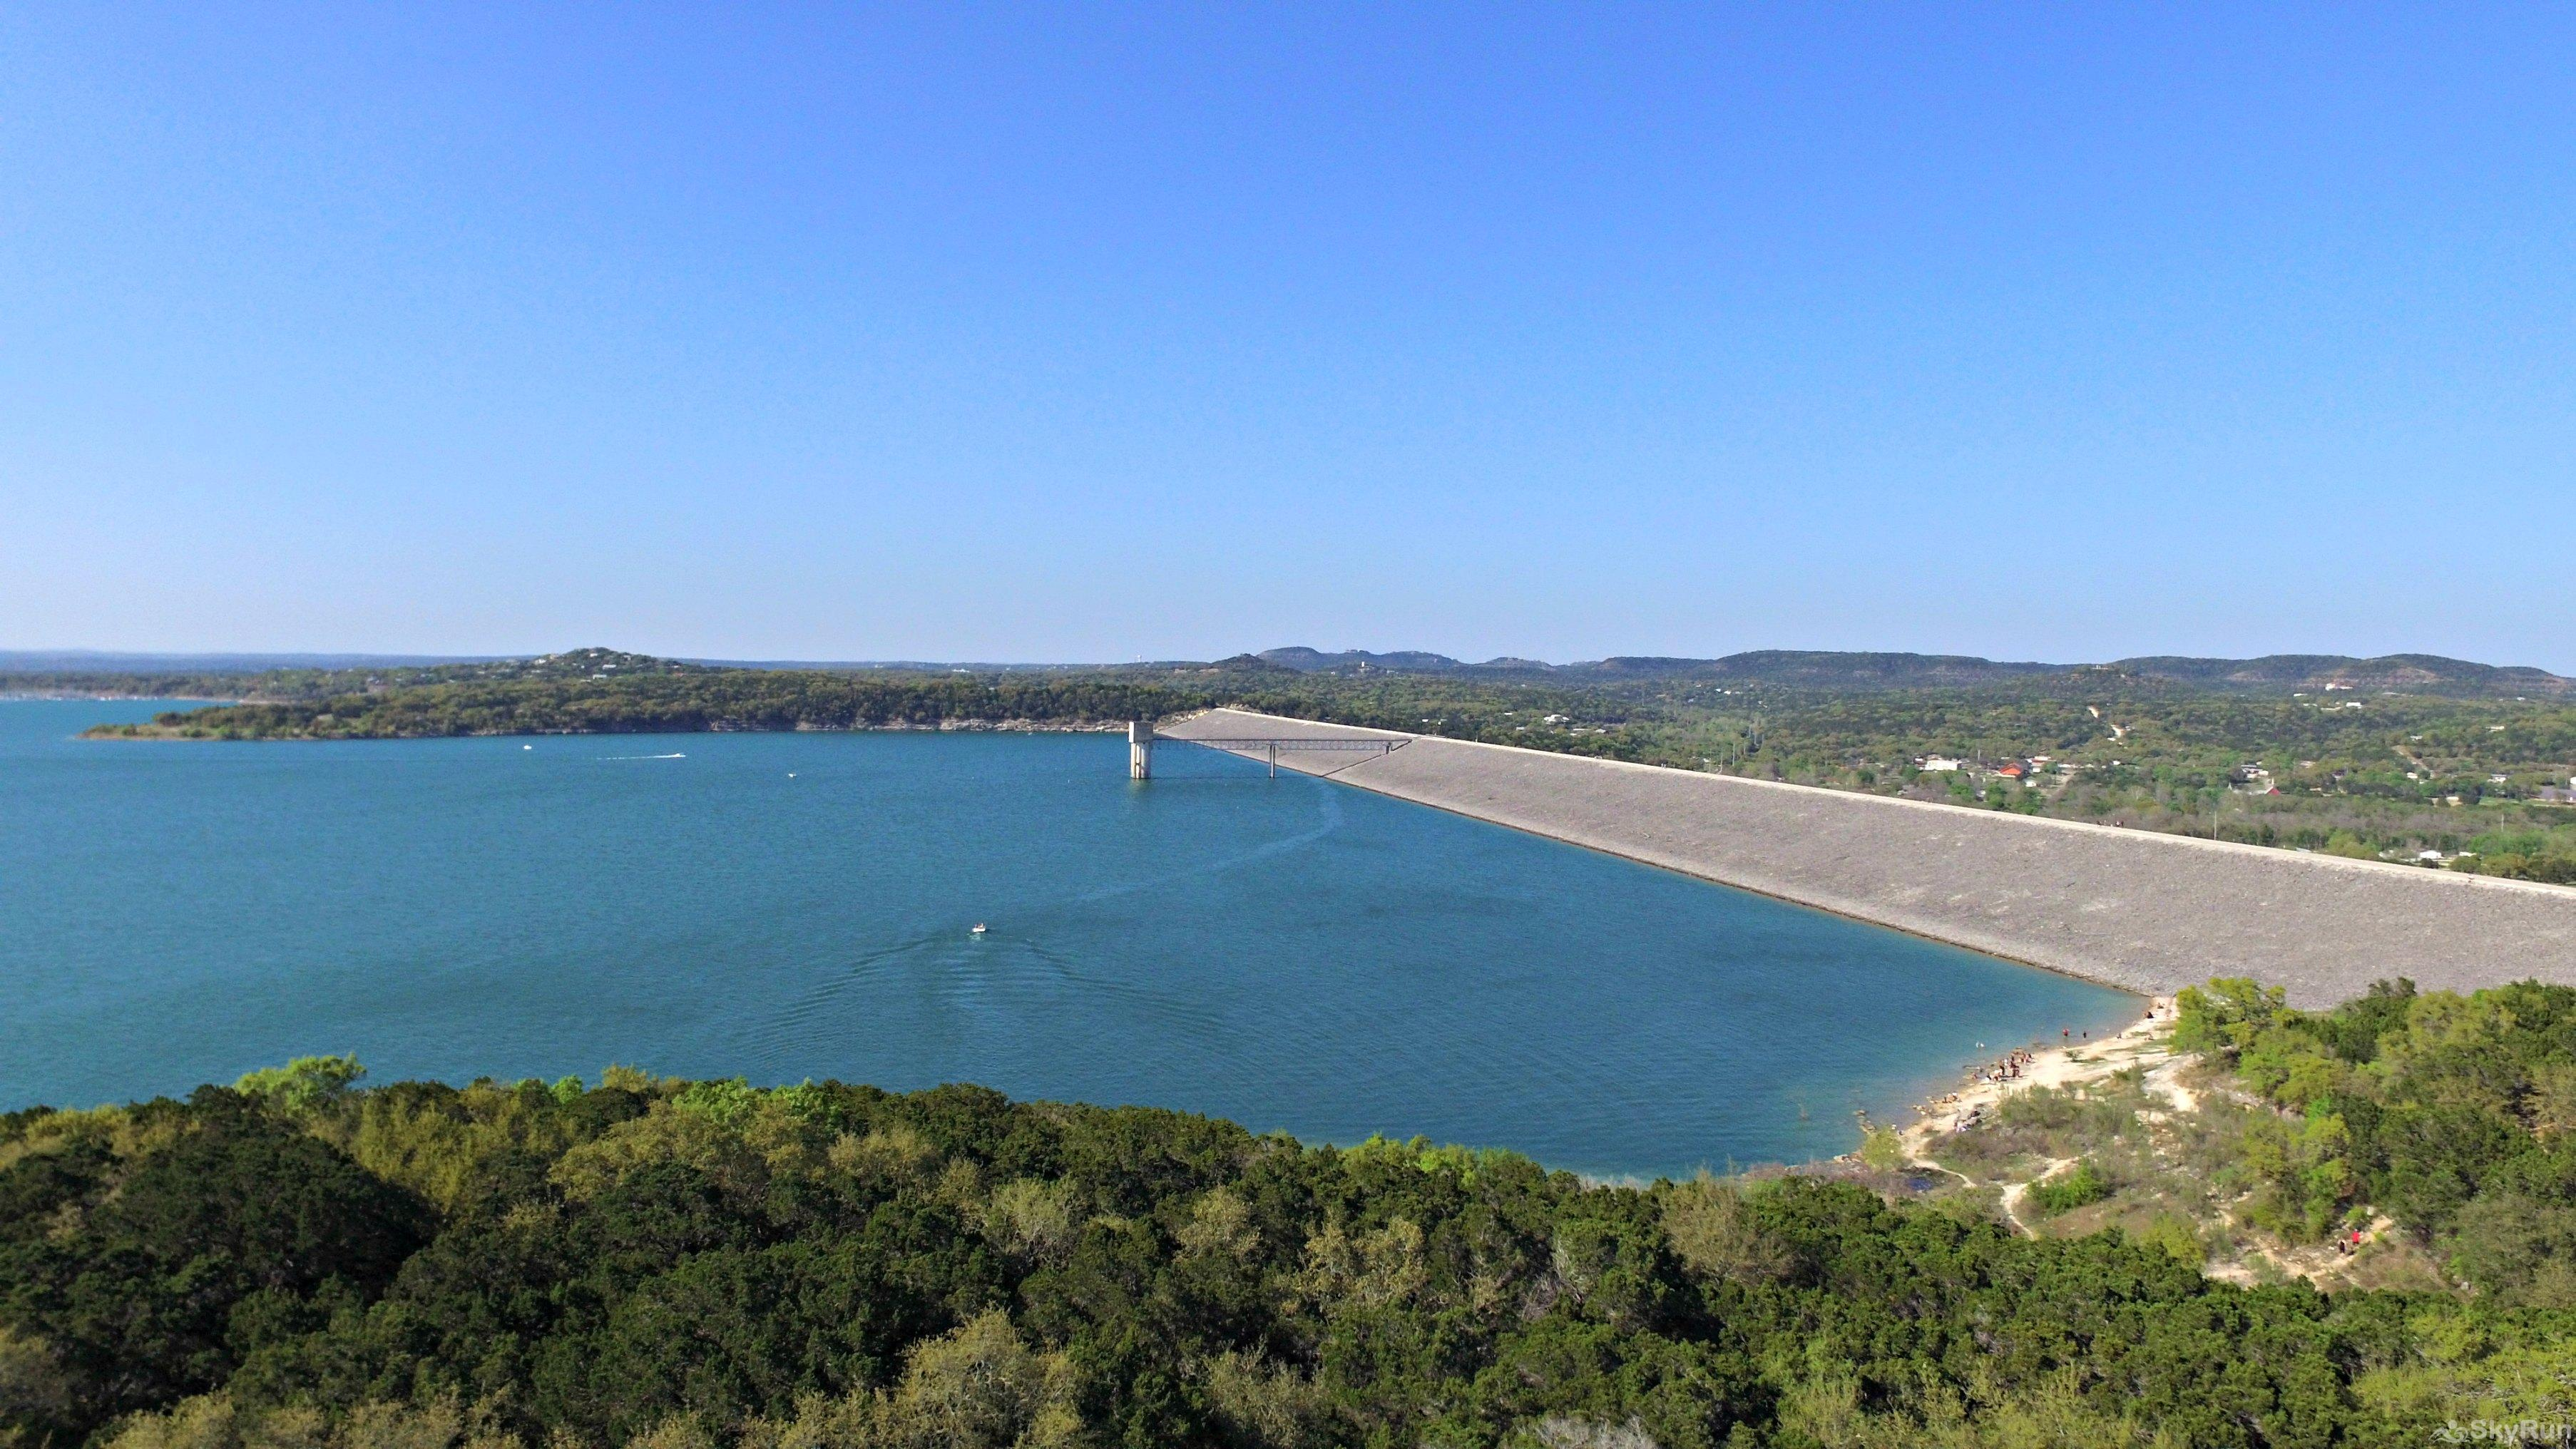 RIO VISTA ON THE GUADALUPE Canyon Lake Dam, 5 miles from Rio Vista